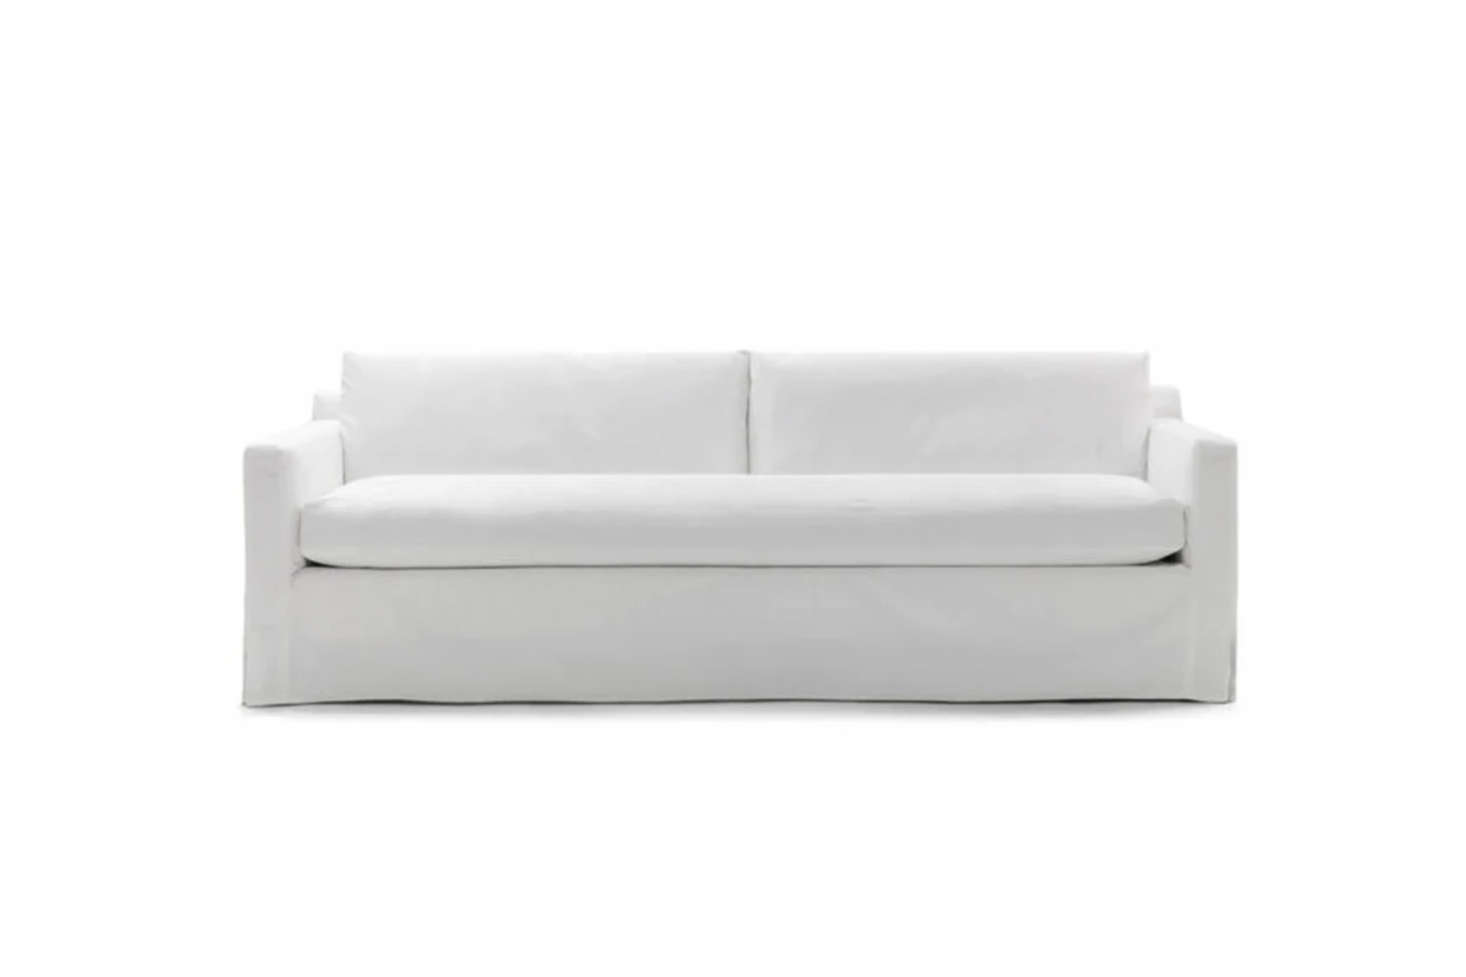 From Mitchell Gold + Bob Williams, the Hunter Long Slipcovered Sofa is clean, simple, and versatile; $4,094.